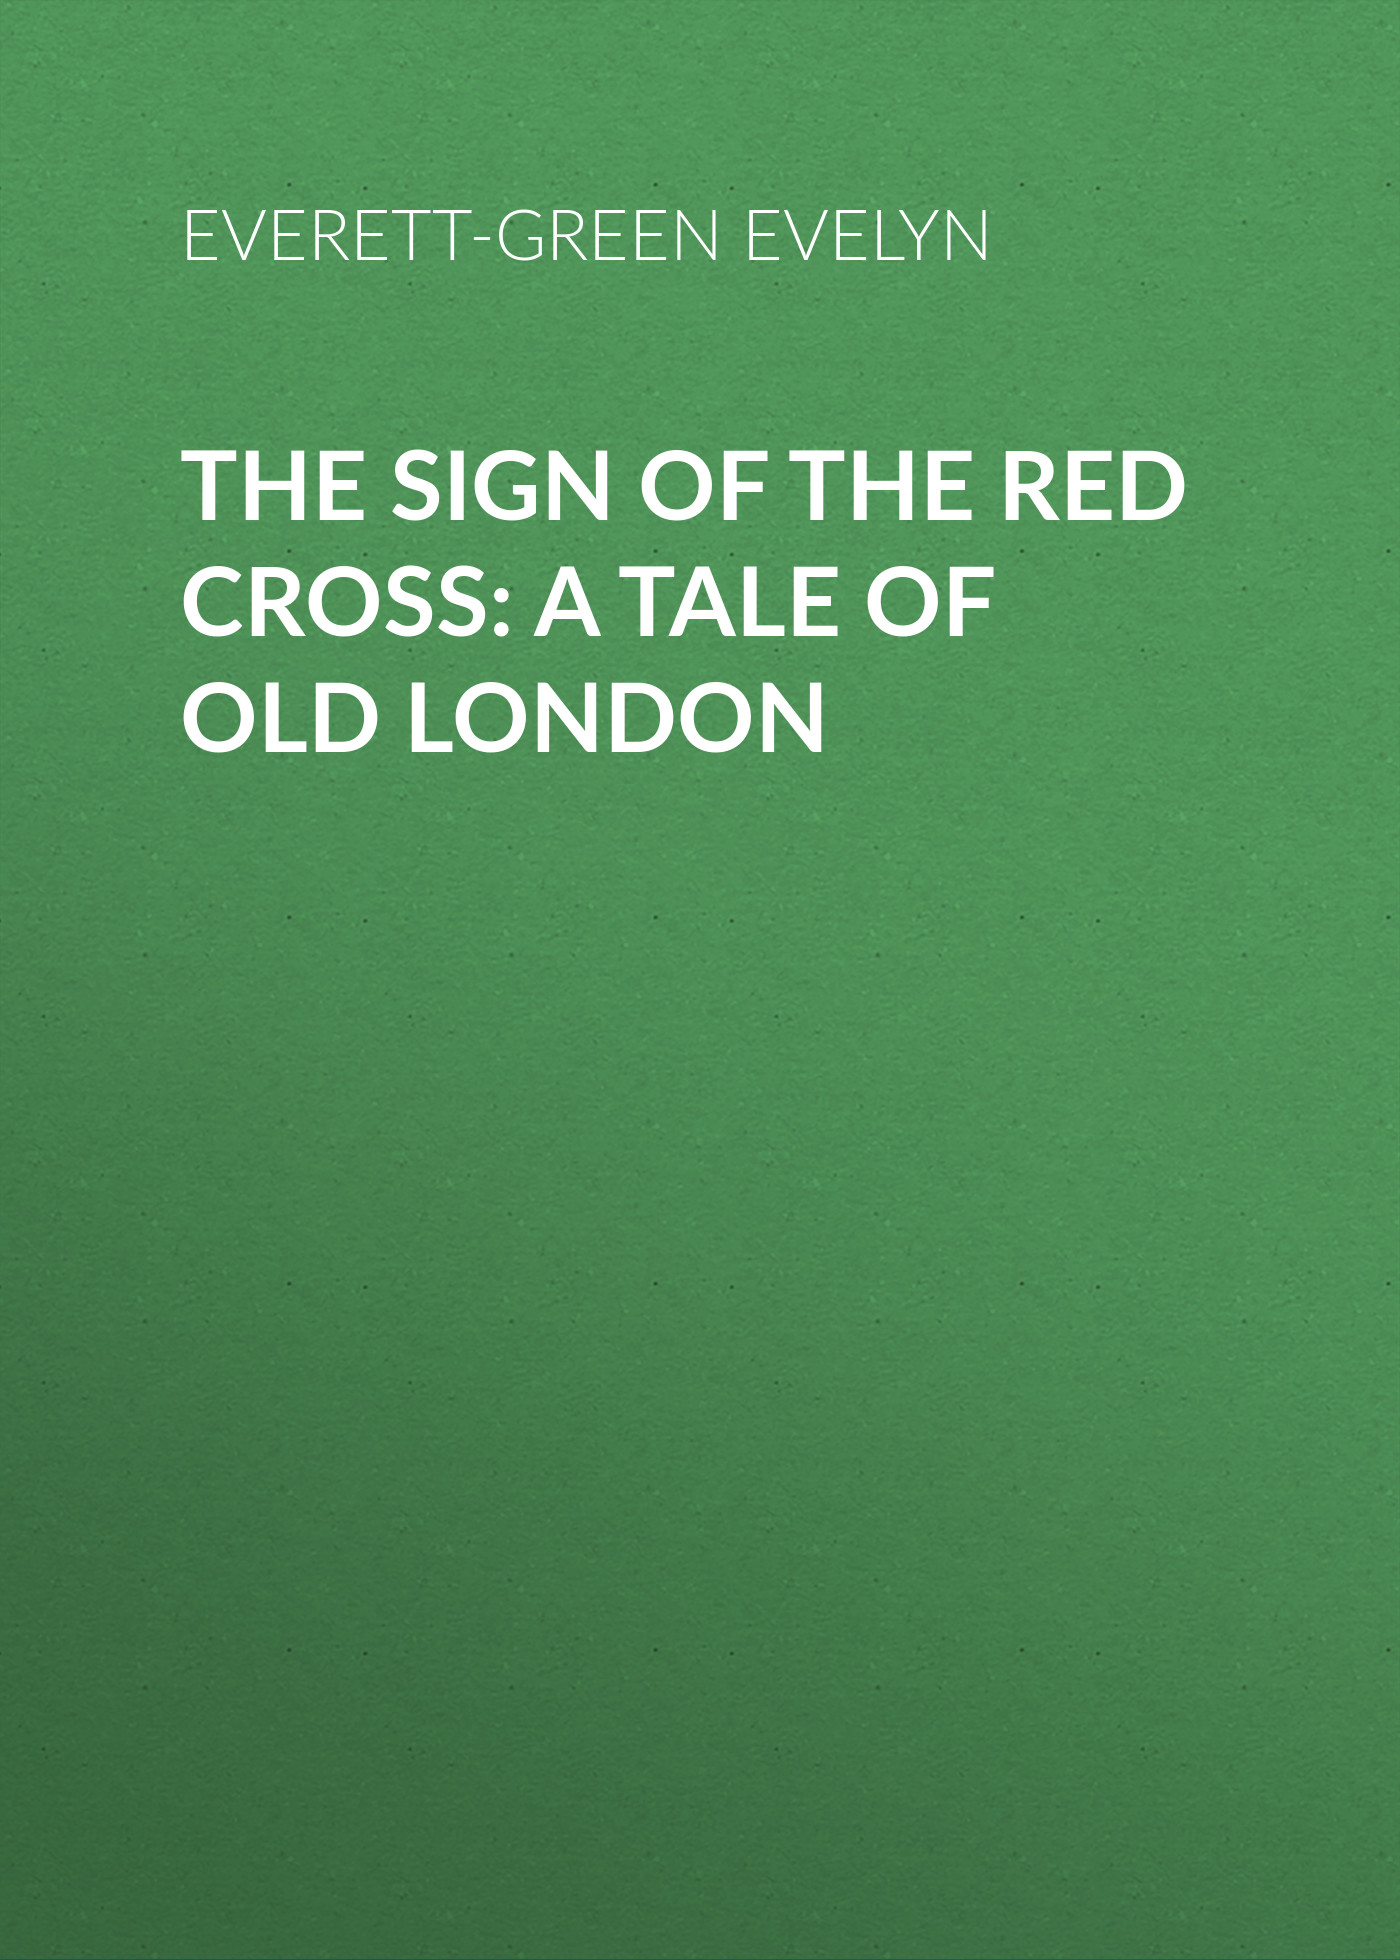 Everett-Green Evelyn The Sign of the Red Cross: A Tale of Old London antigenic cross reactivity of pneumo vaccine